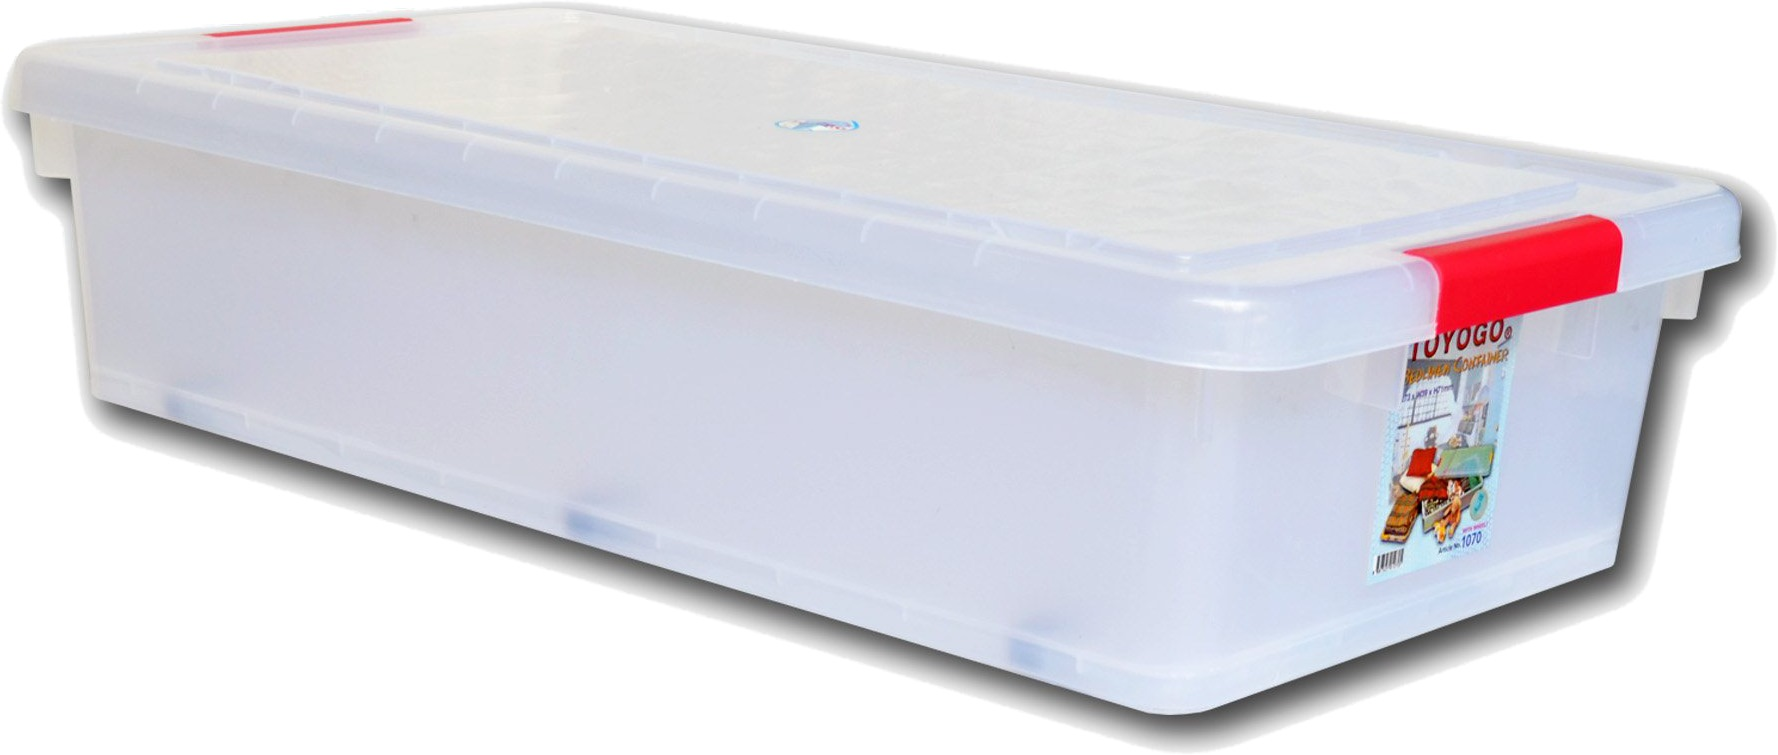 Charmant Product Details. TOYOGO STORAGE BOX ...